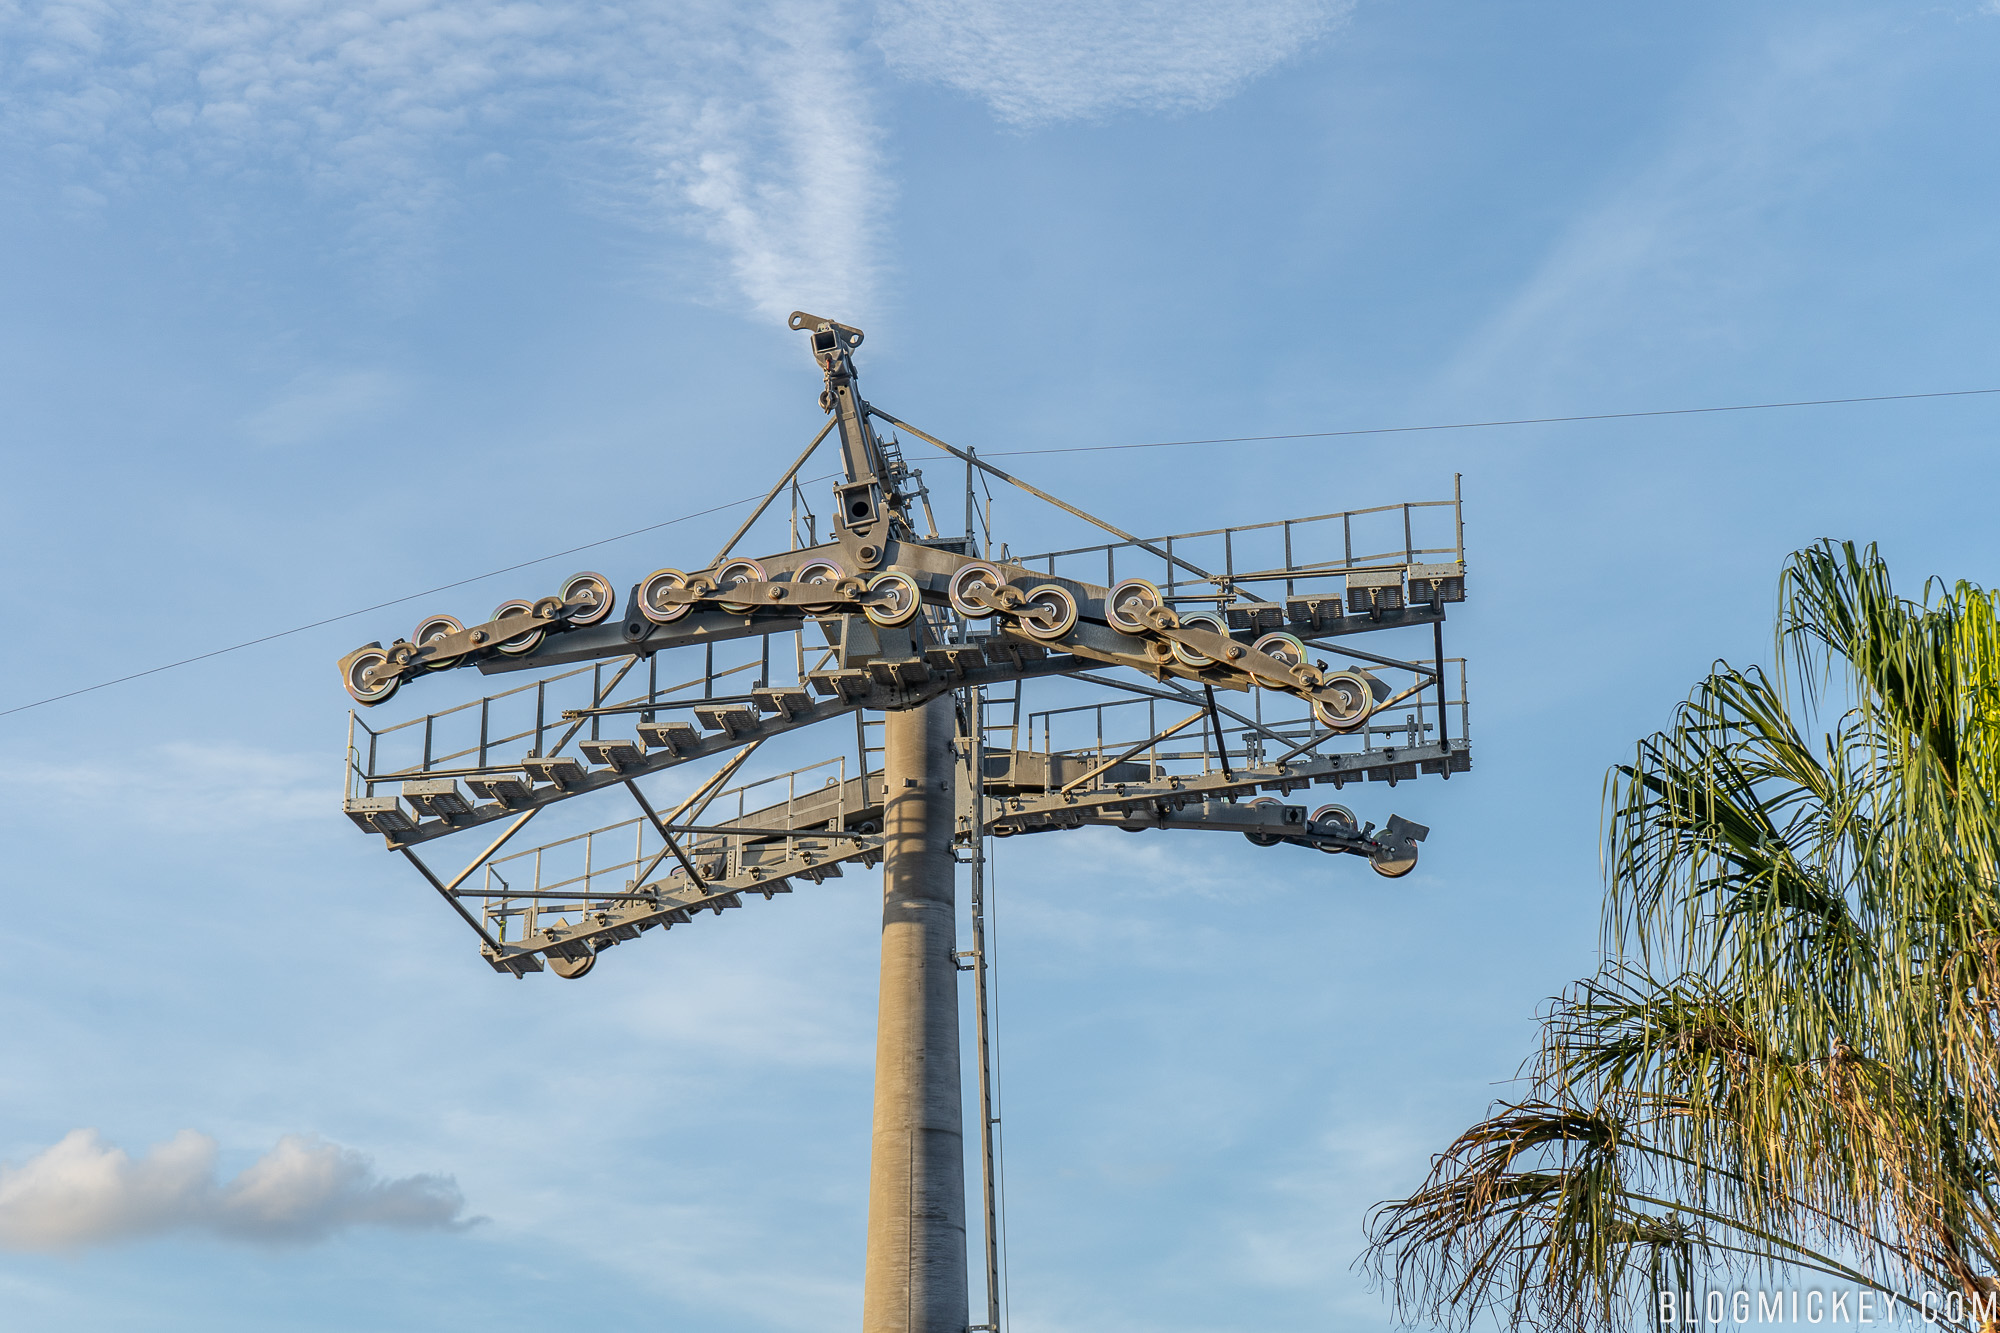 Photos Preparations Underway To Install Cables At Hollywood Studios Wiring Sky Box Under Each Tower In The Parking Lot Is Some Material That Appears Be Scaffolding Its Believed Disney Installing These Below Wires As An